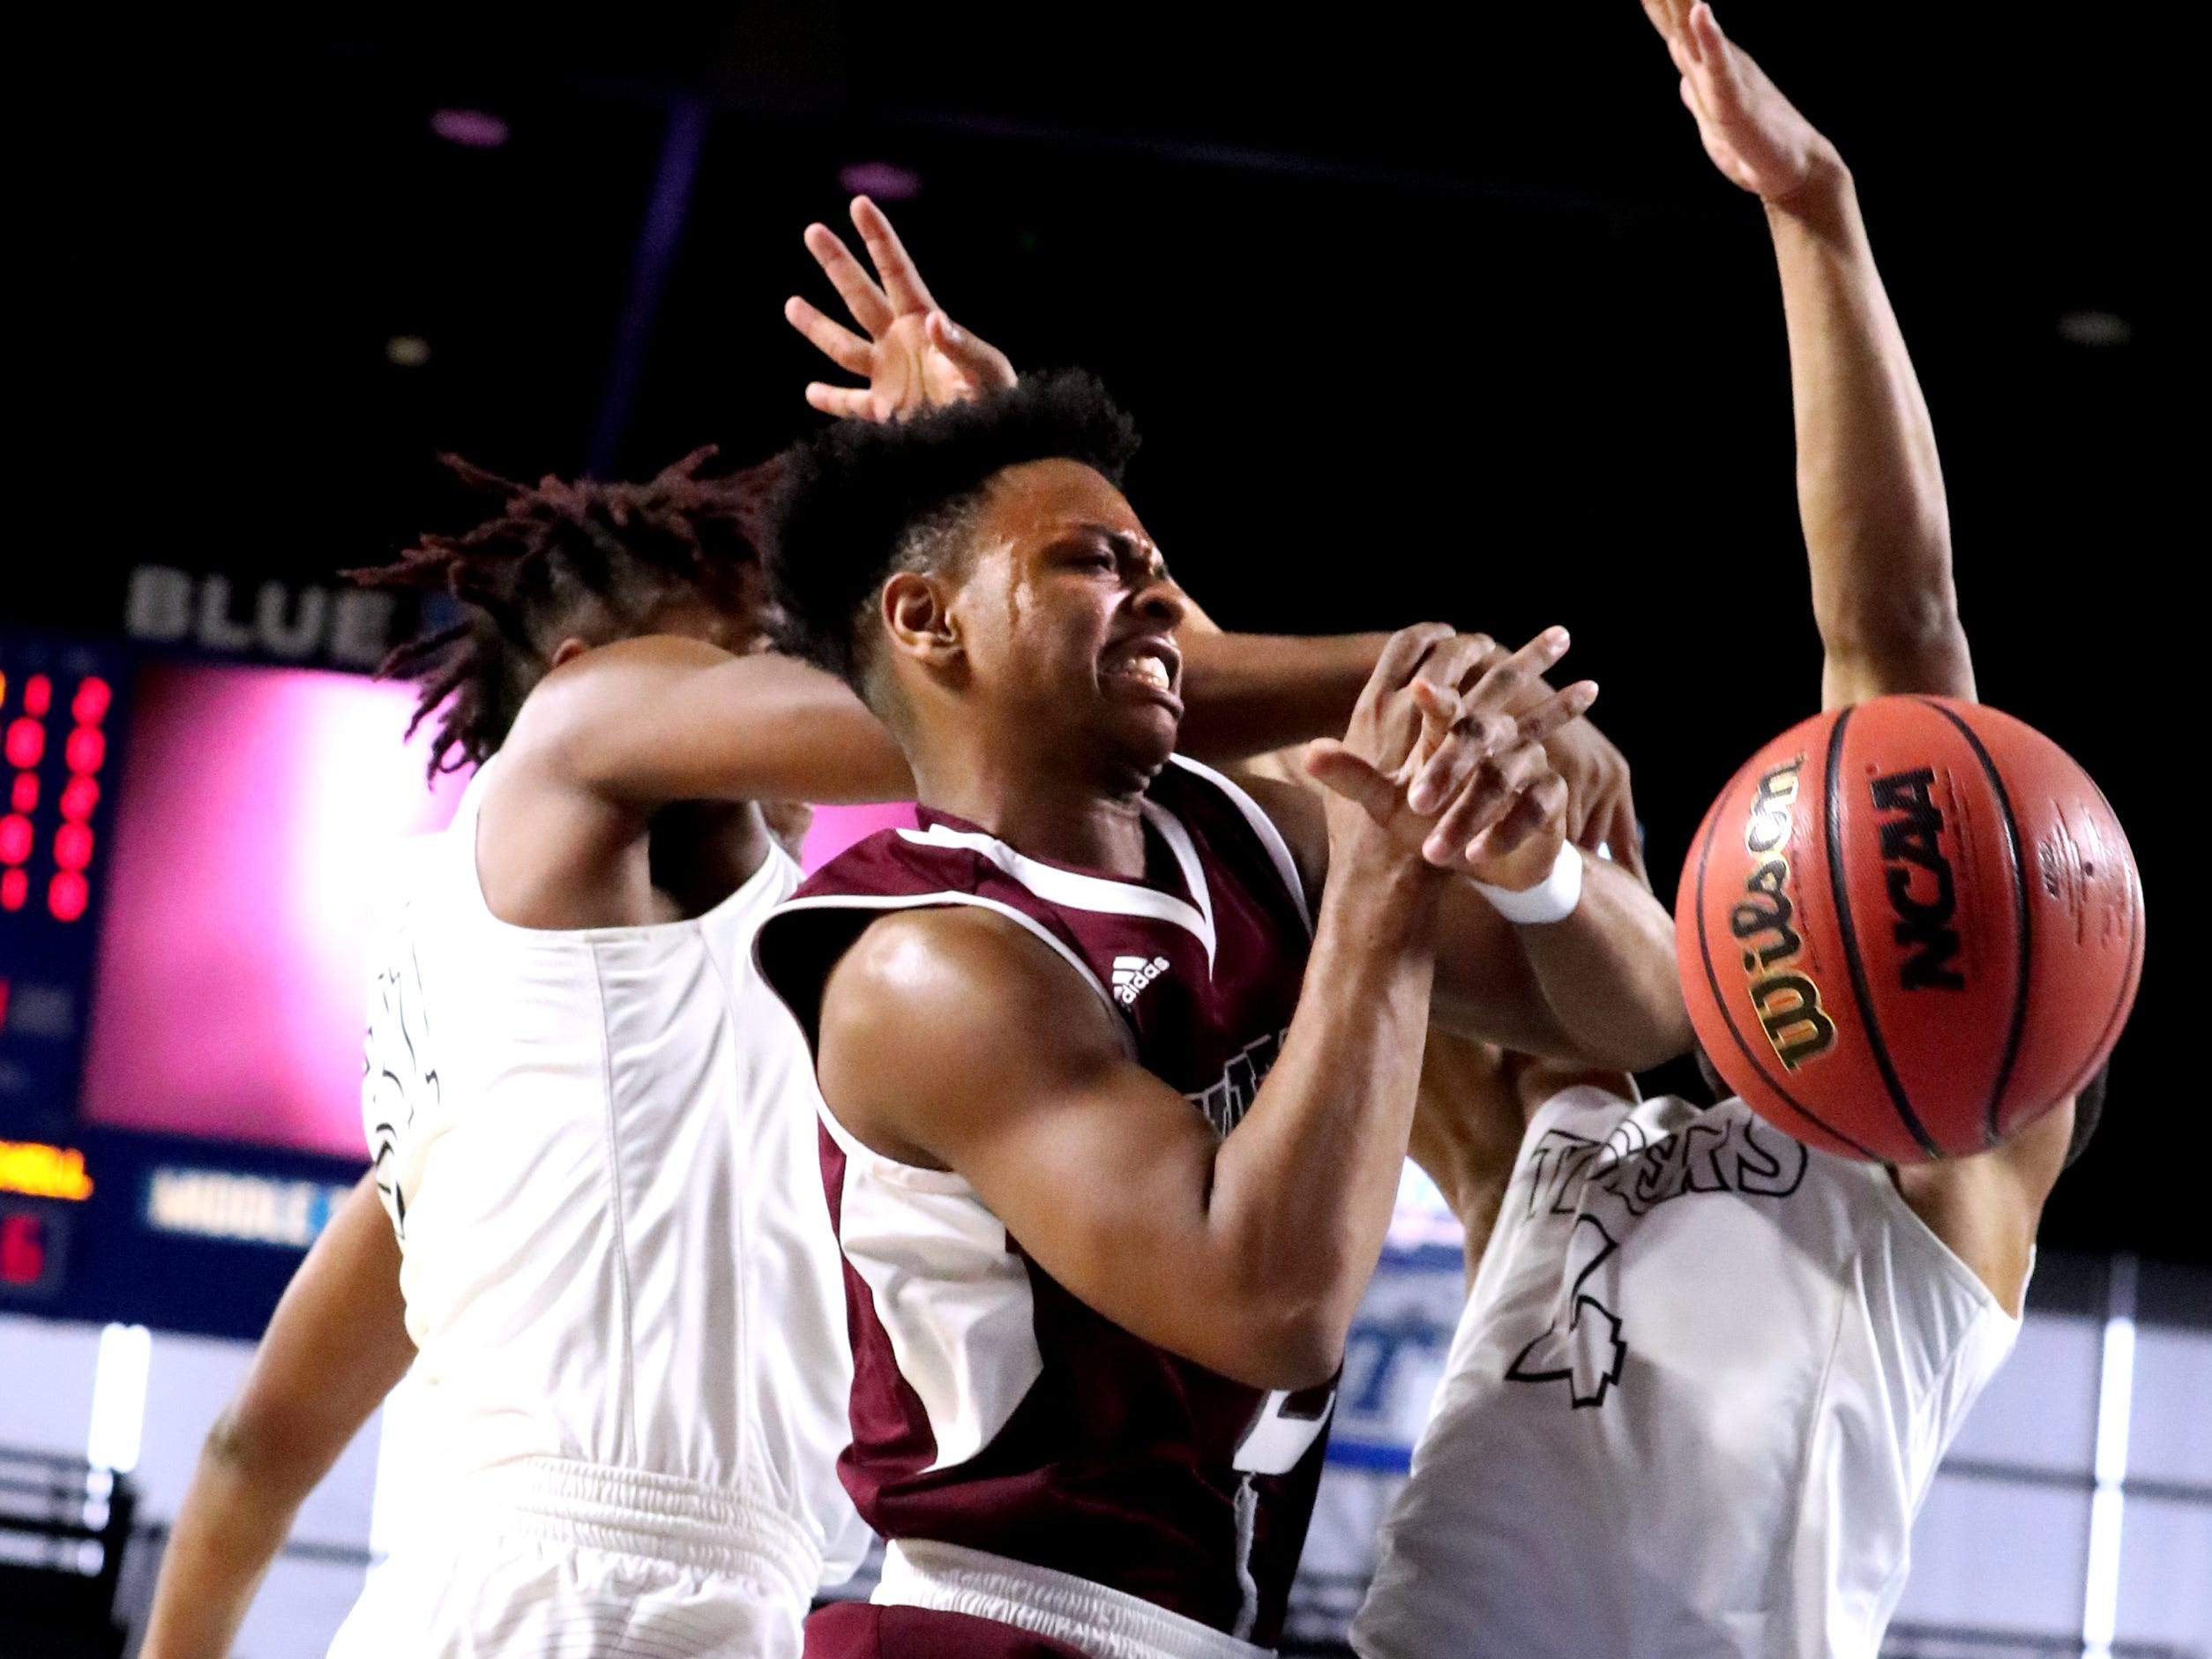 Fulton's Tommy Sweat (22) and Mitchell's Mikell Rice (1) both fight for position during the quarterfinal round of the TSSAA Class AA Boys State Tournament, on Wednesday, March 13, 2019, at Murphy Center in Murfreesboro, Tenn.